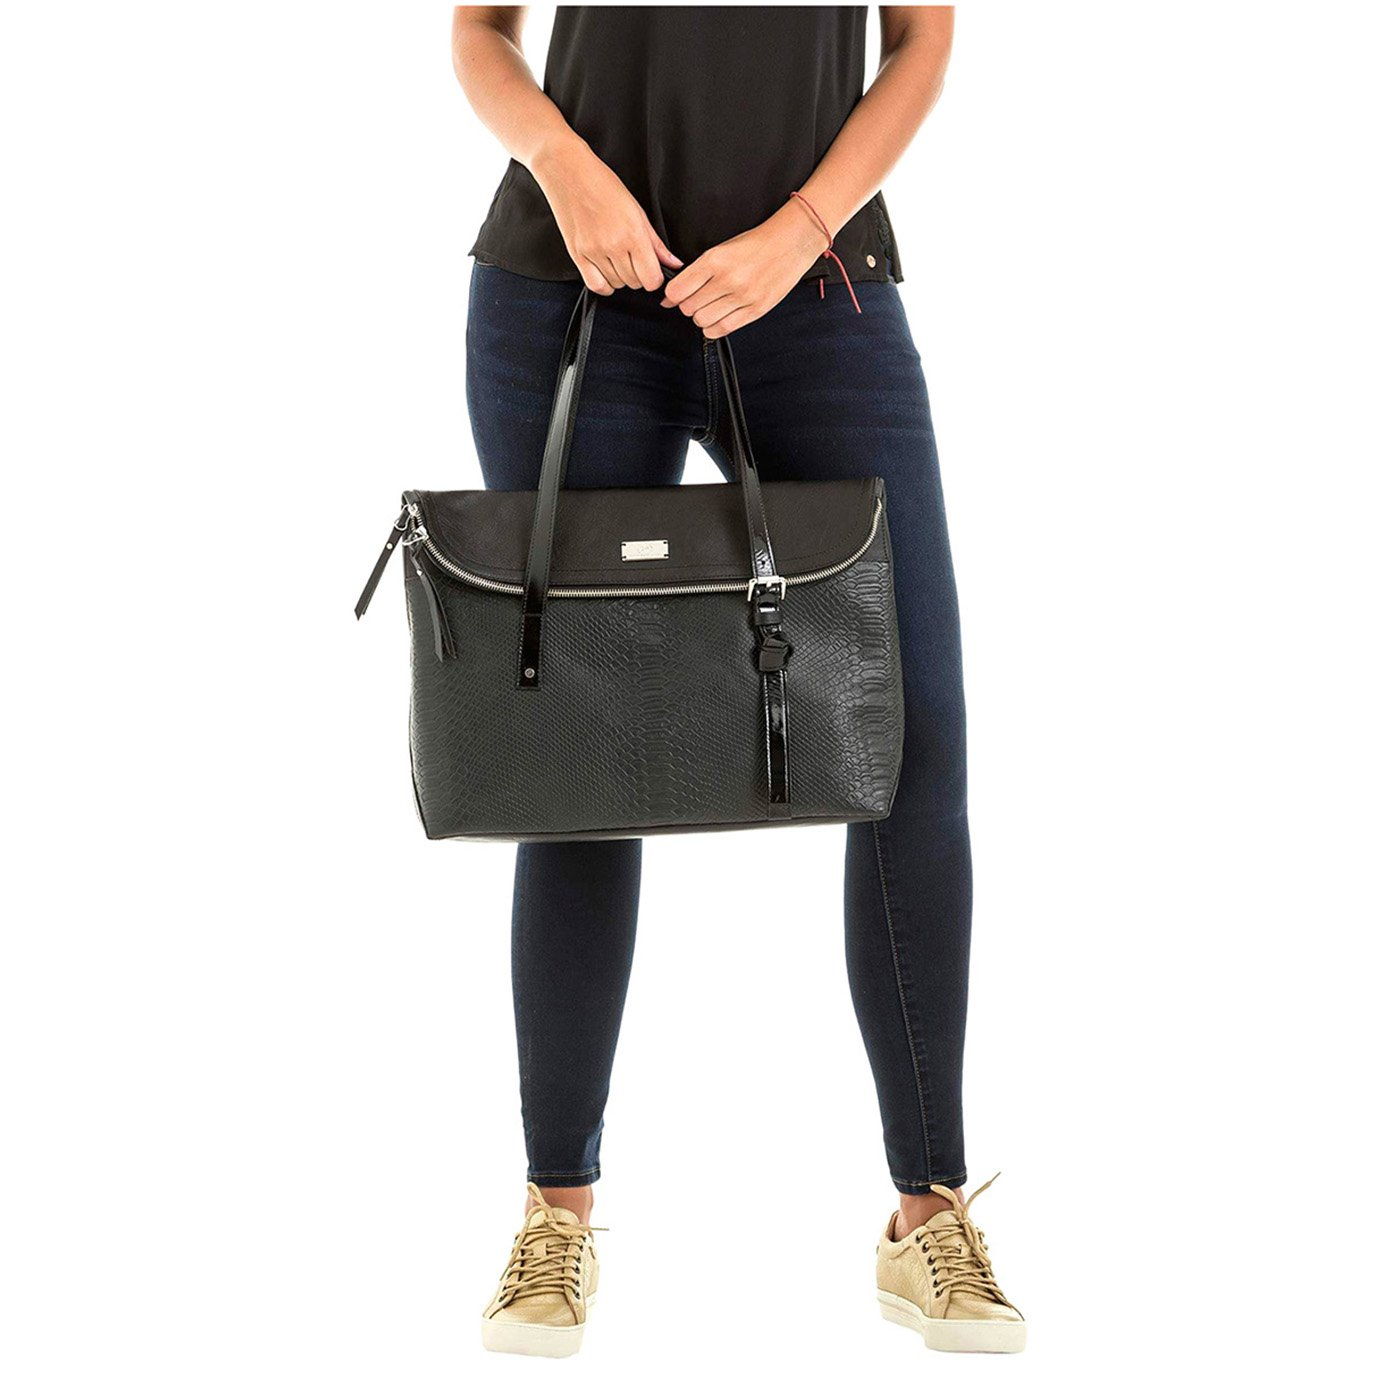 Malet/ín De Cuero Mujer Black V/ÉLEZ 20666 Women Leather Business Briefcase